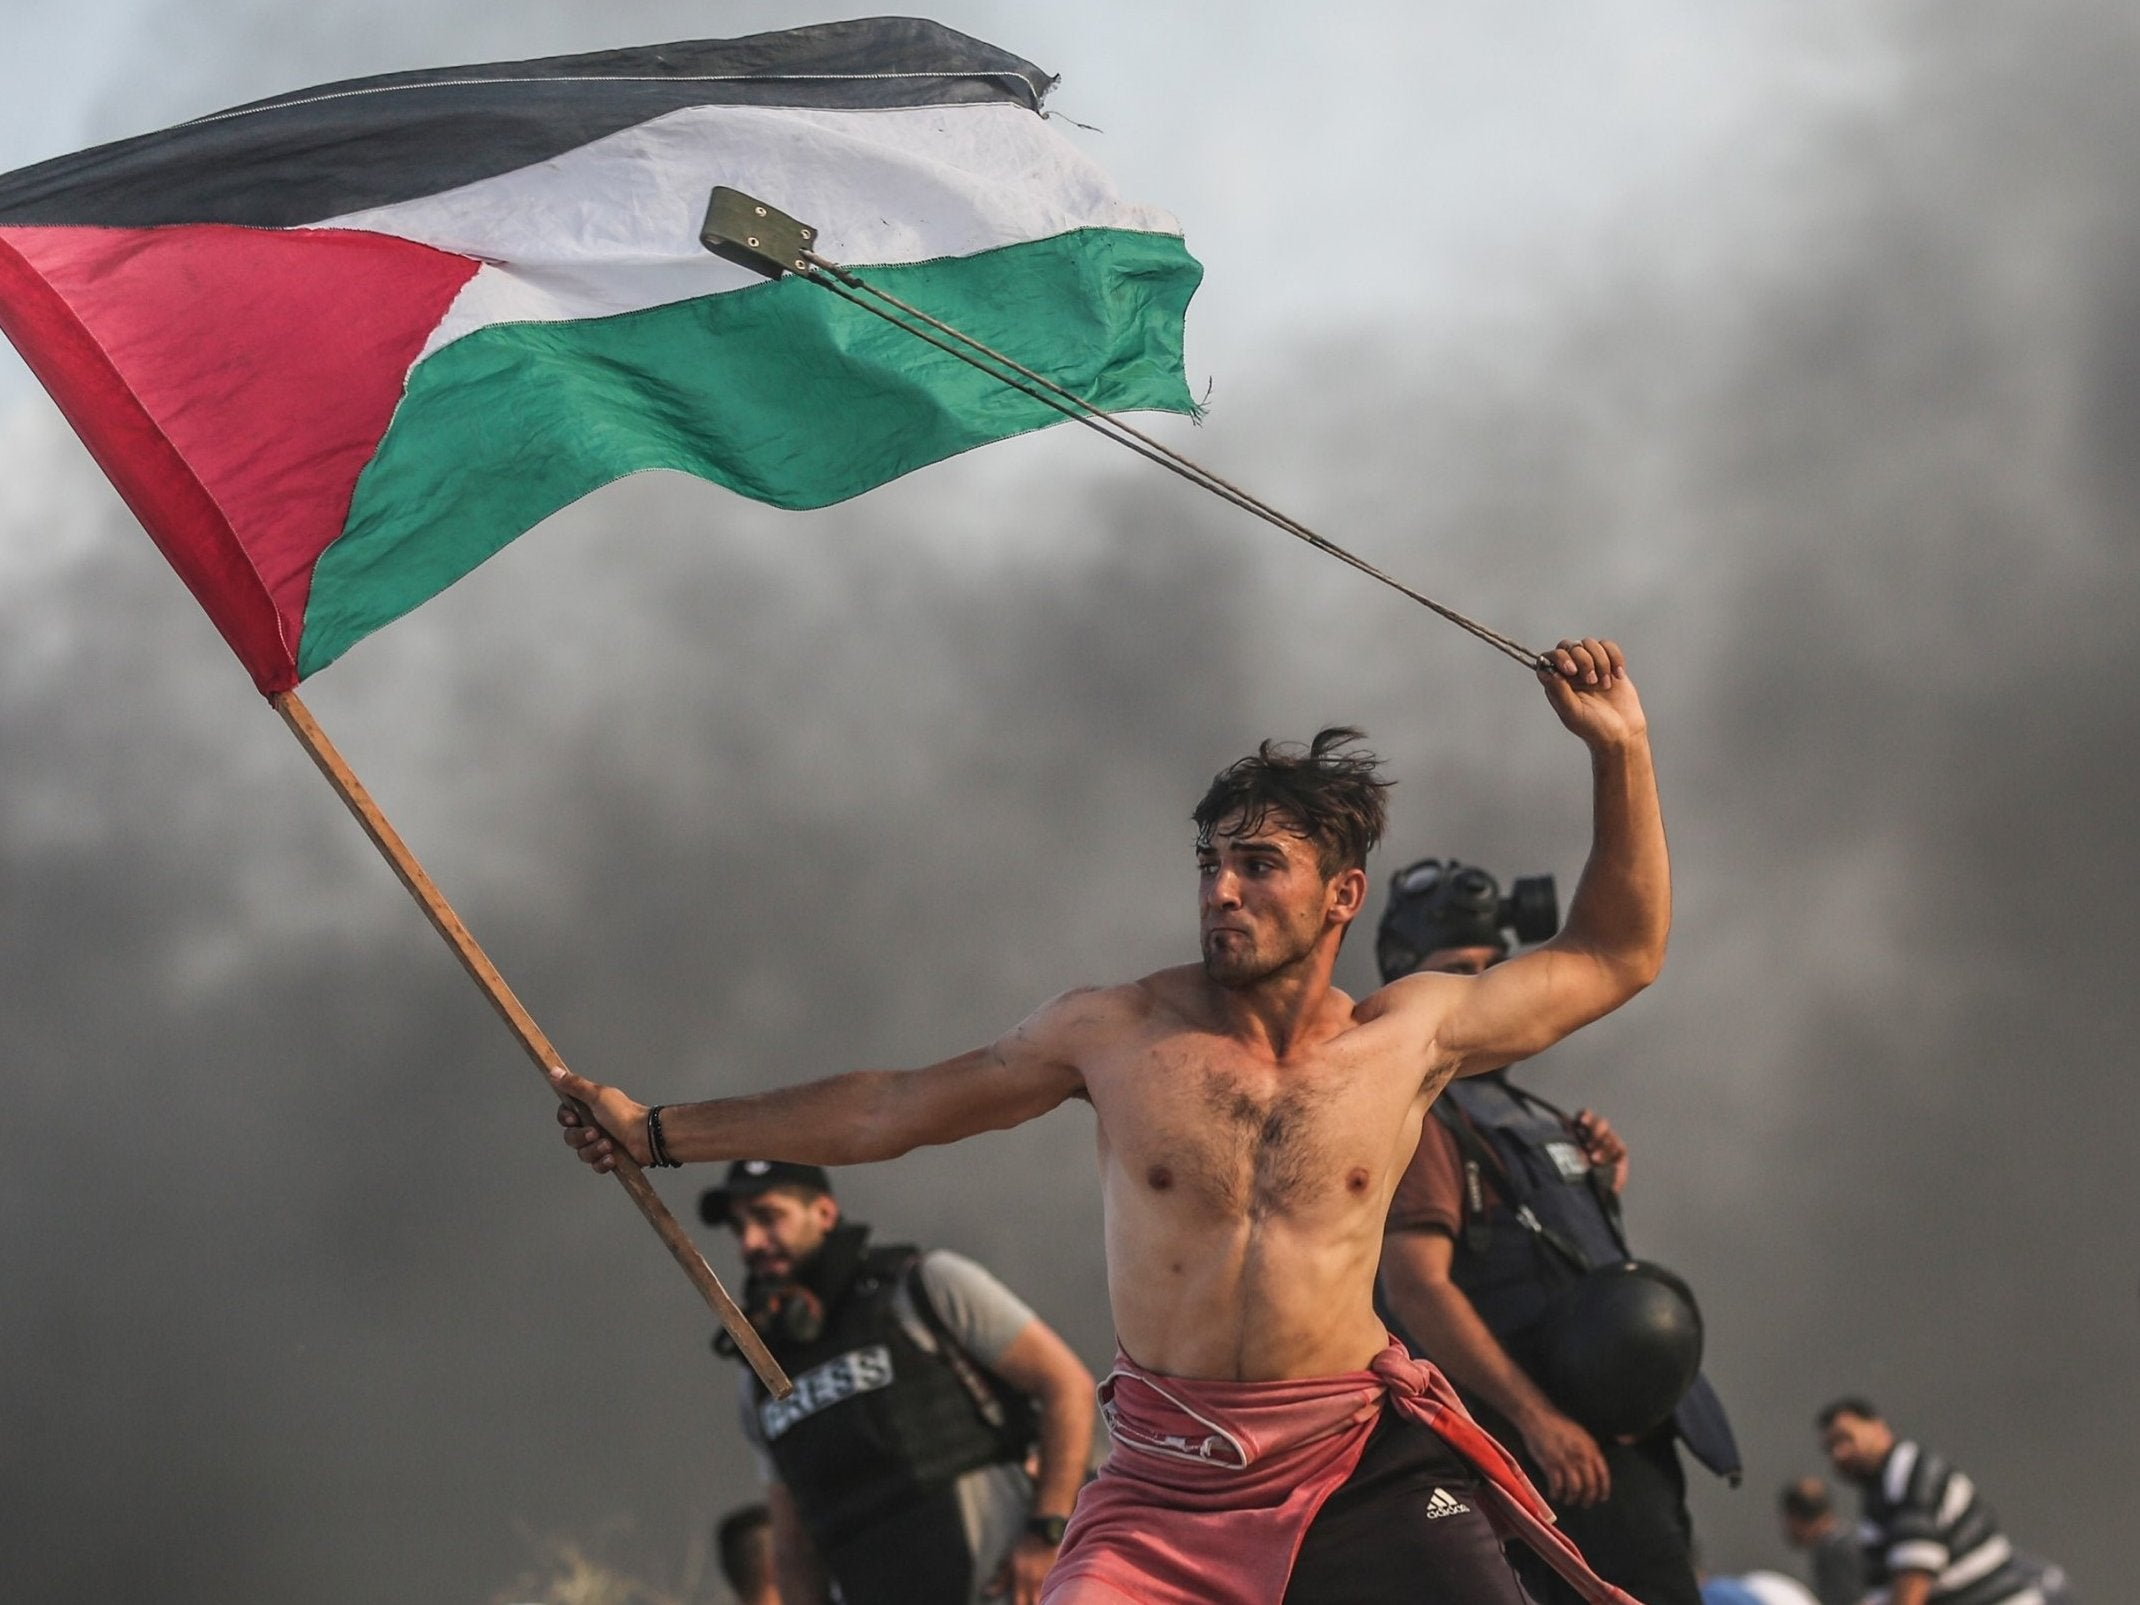 'Will he lose his leg?': Thousands of Gaza protesters facing life-altering injuries from Israeli high velocity bullets